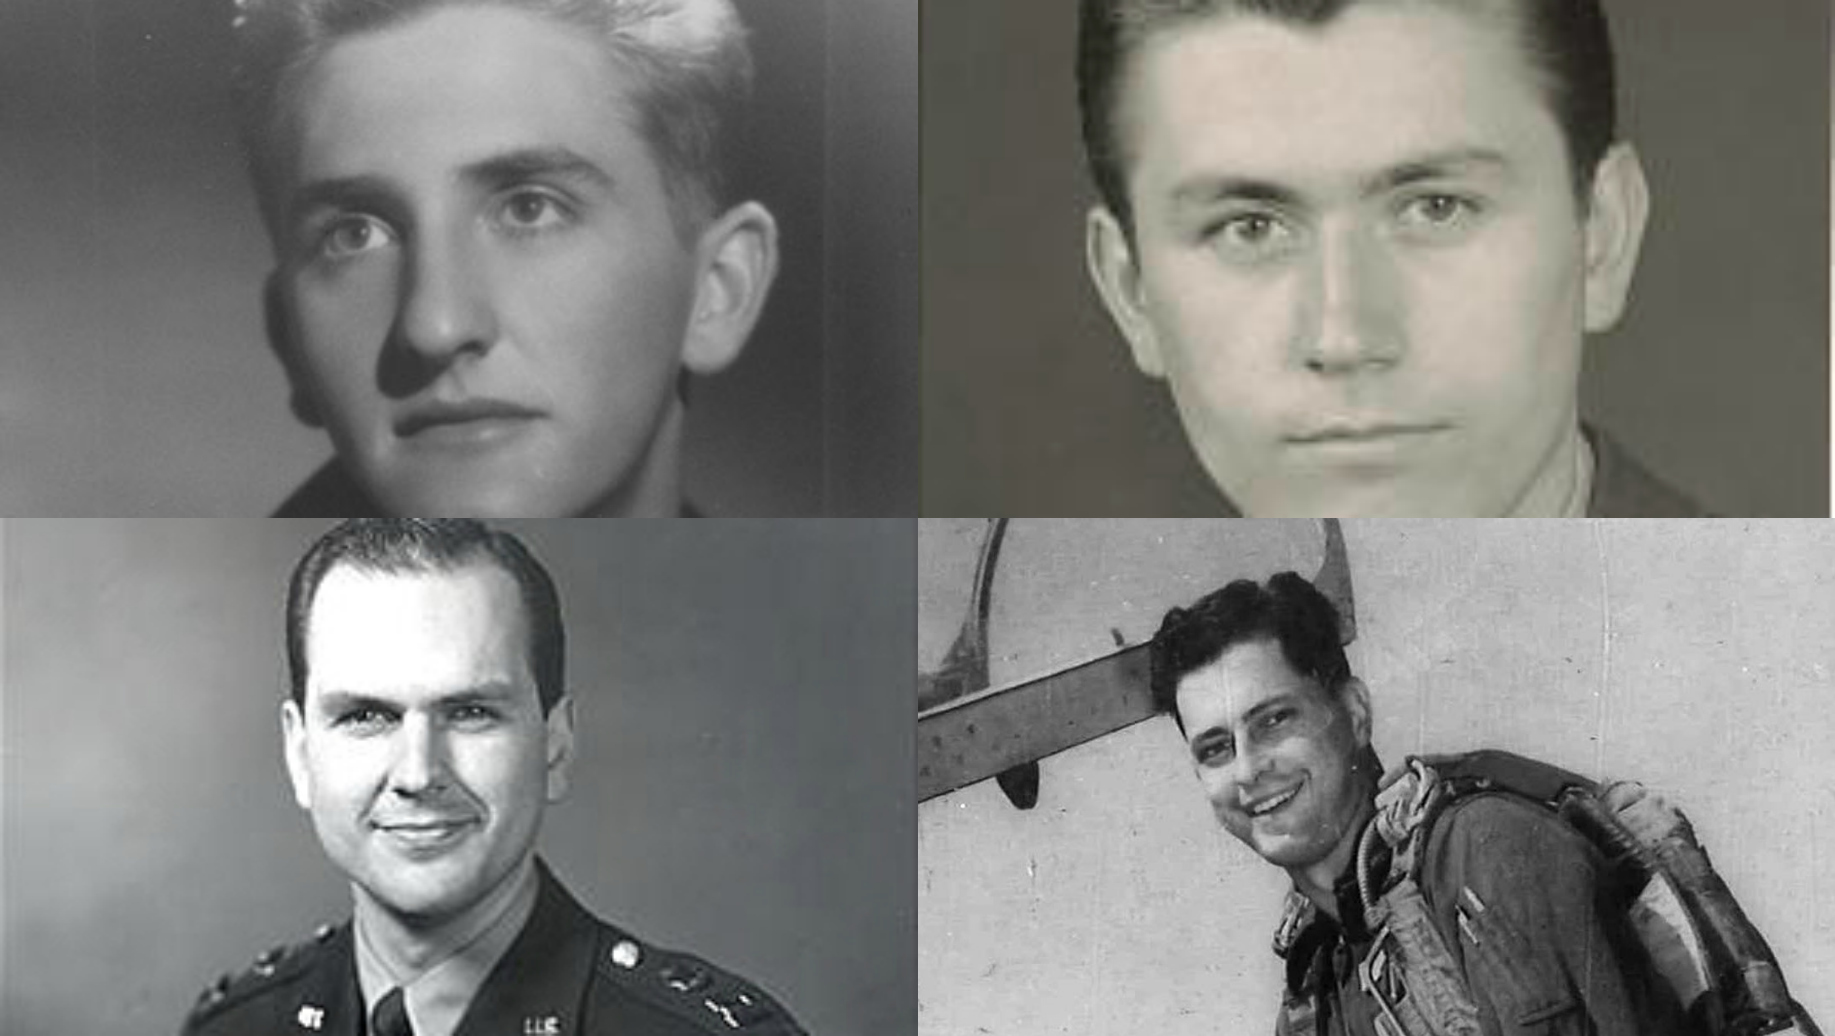 7 Apostles with Military Service